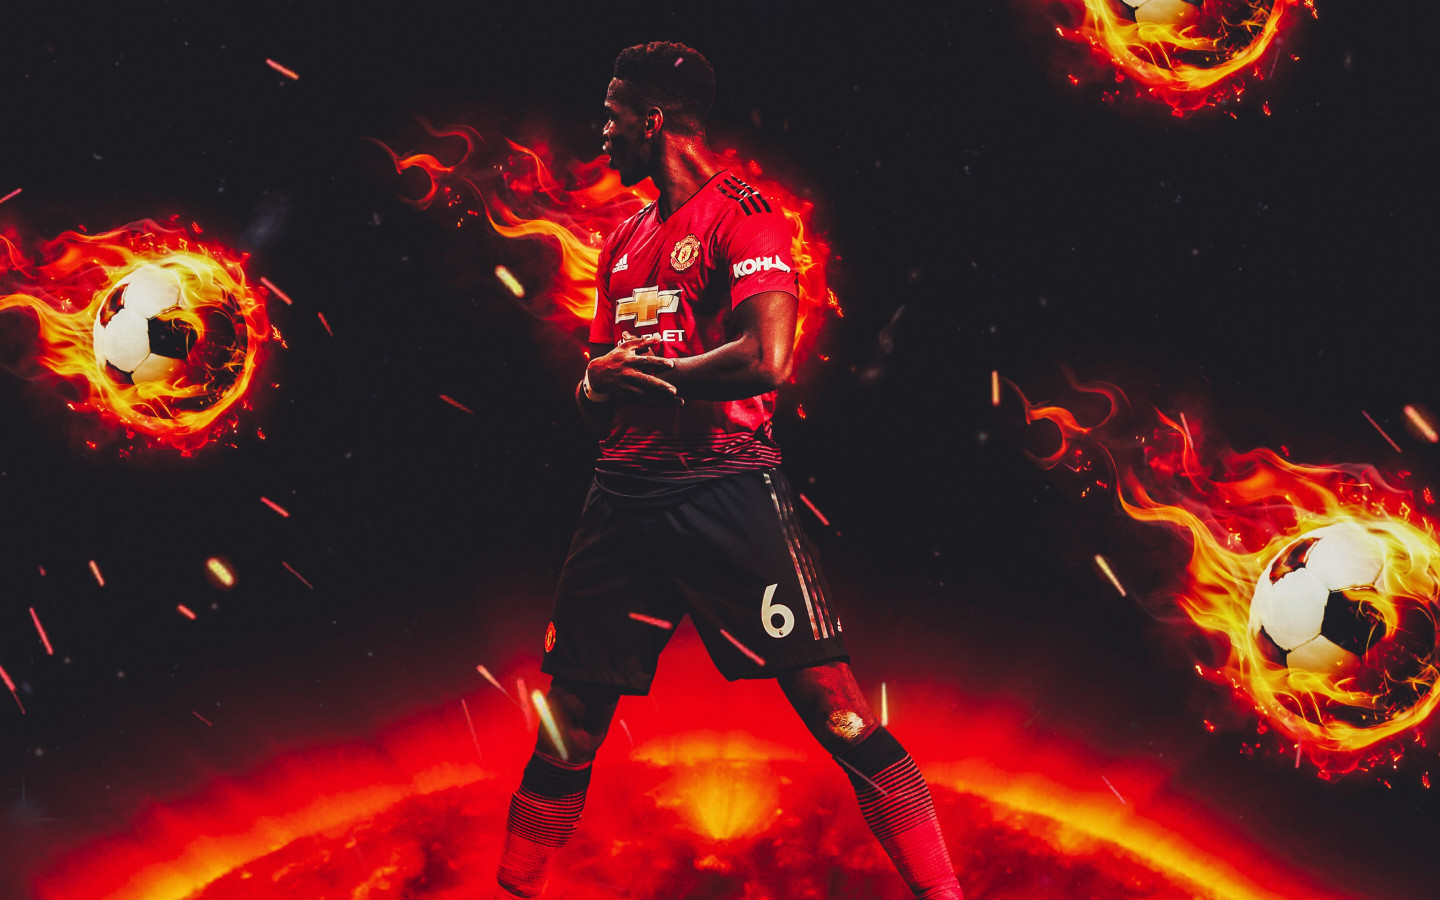 Paul Pogba for Manchester United wallpaper 1440x900